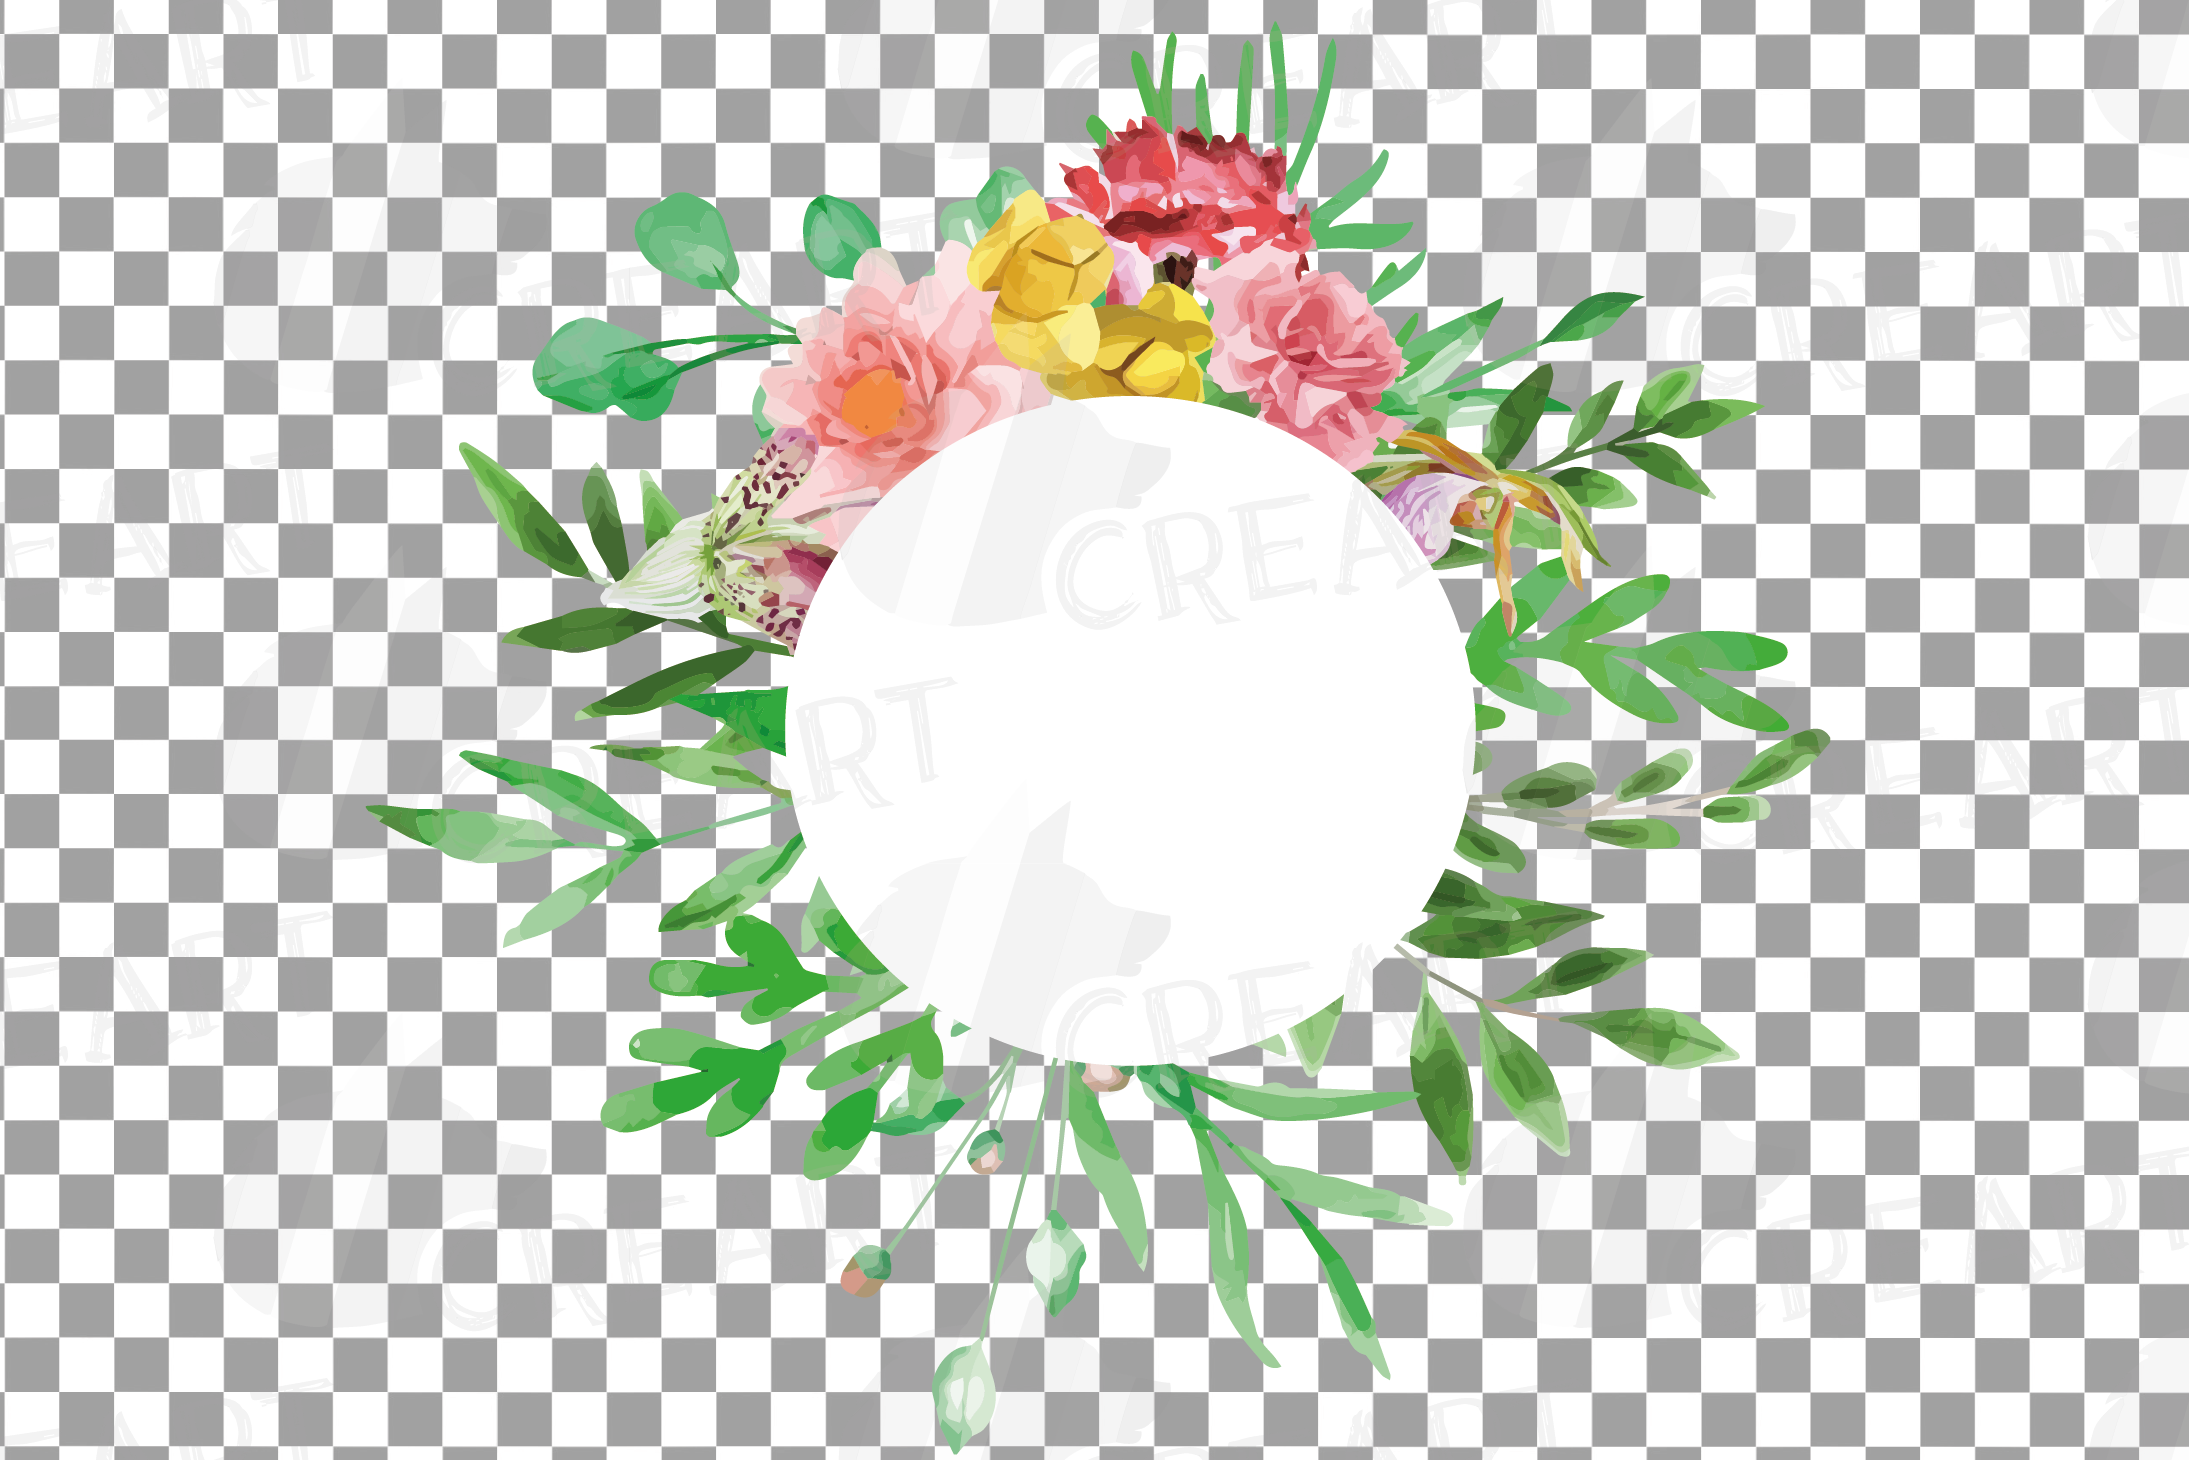 Watercolor floral floral frames and borders clip art pack example image 24